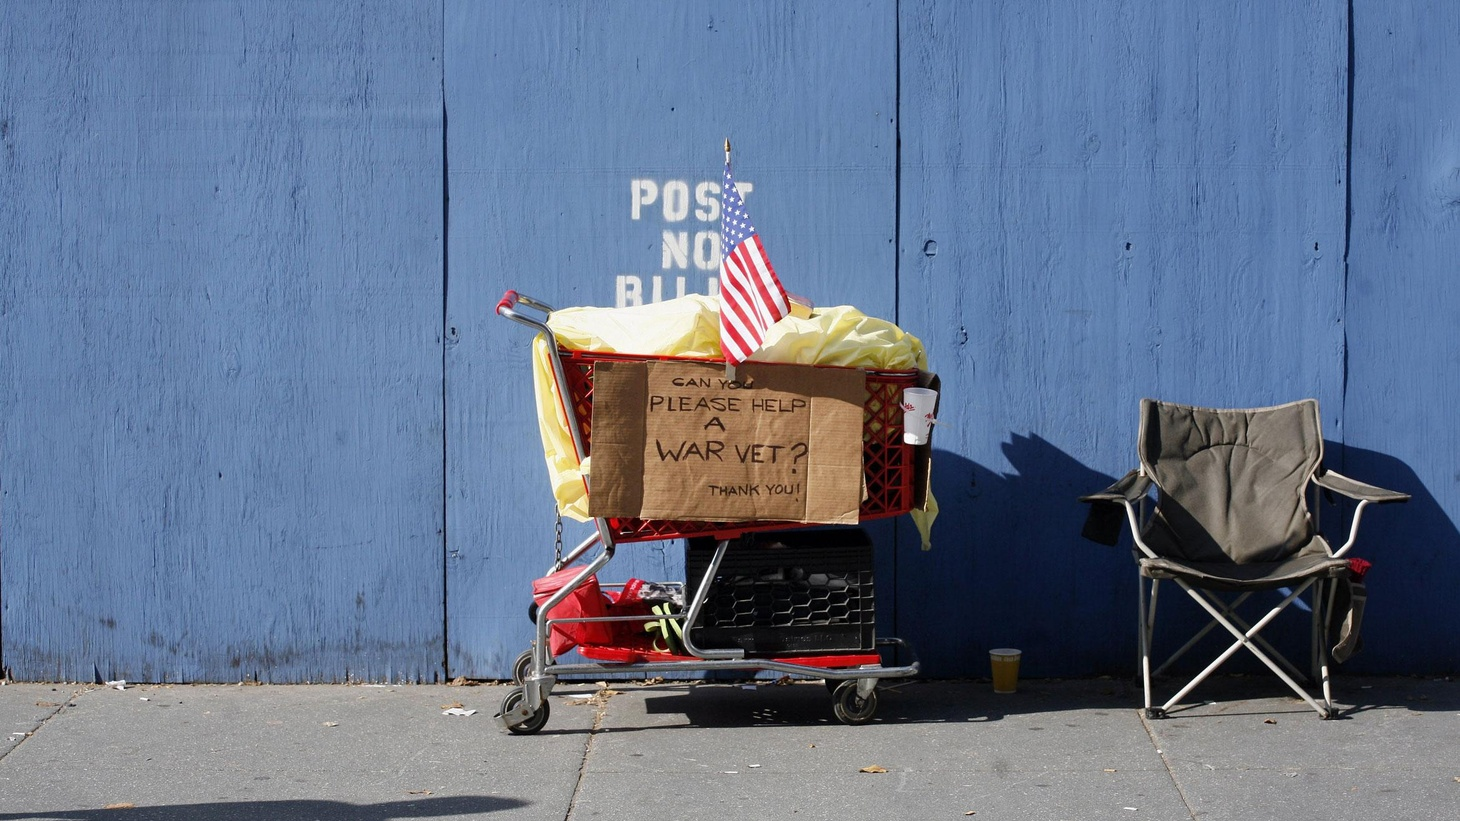 More than 300 acres of land on LA's Westside were donated for the use of American veterans. So why are 6000 veterans homeless while part of the land is used for commercial purposes?